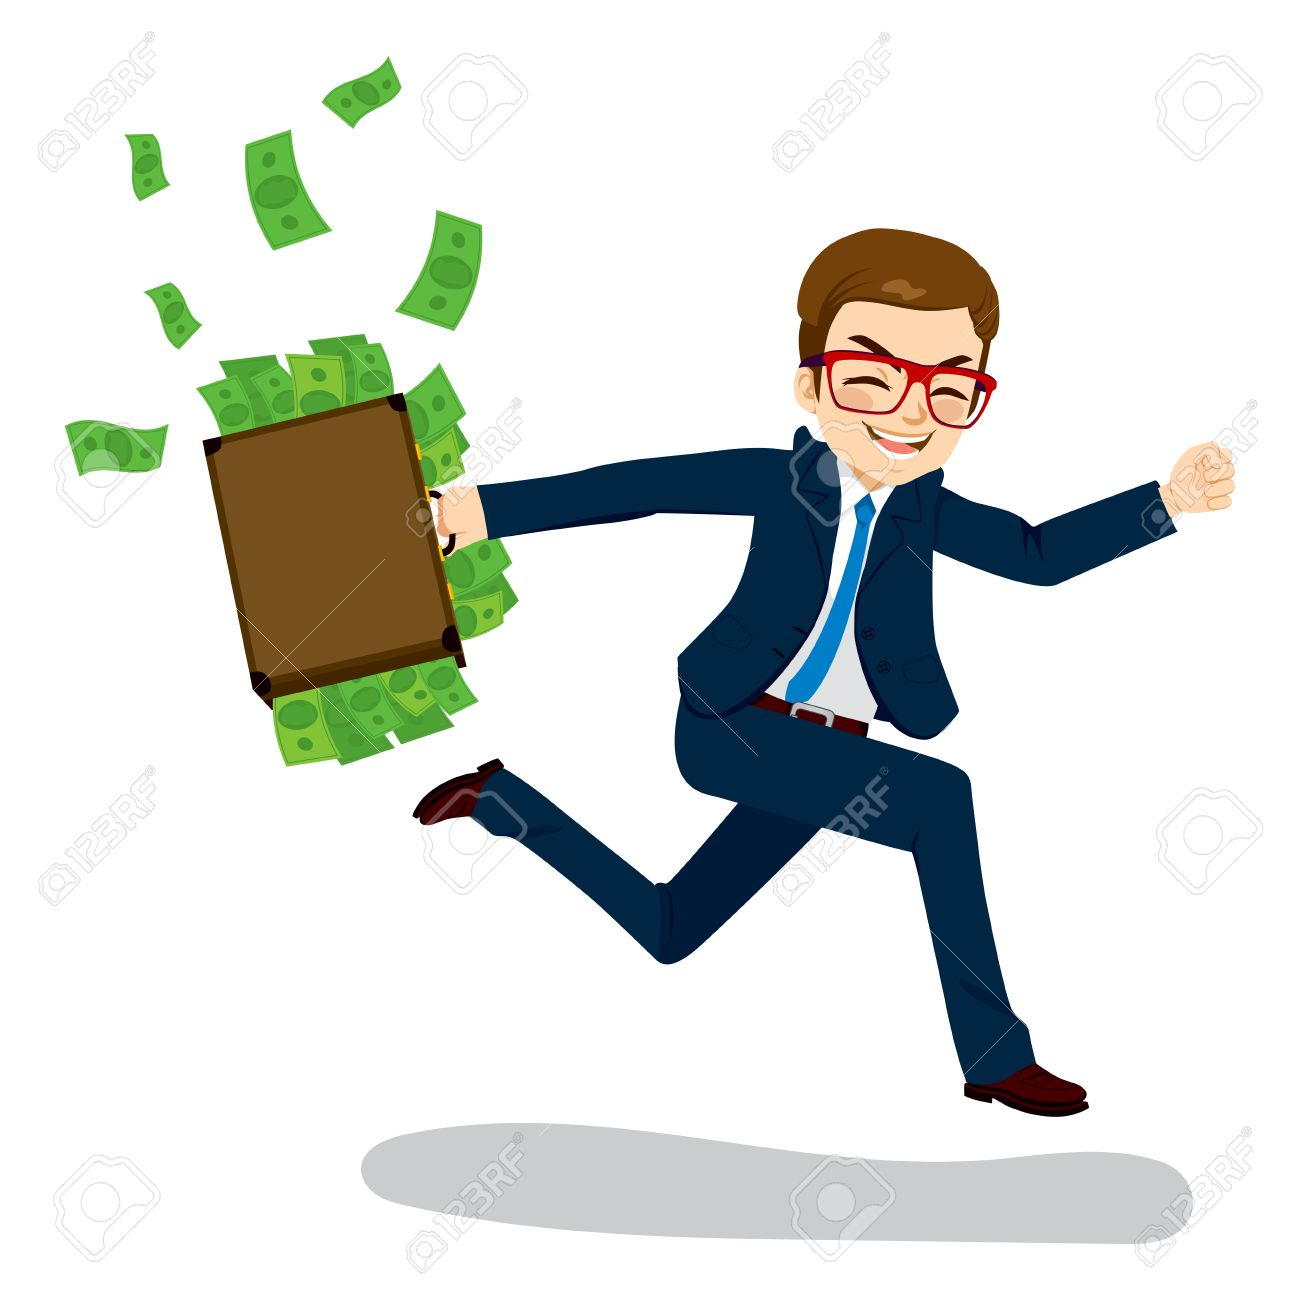 Young businessman happy running away carrying briefcase full with money spilling - 63072570